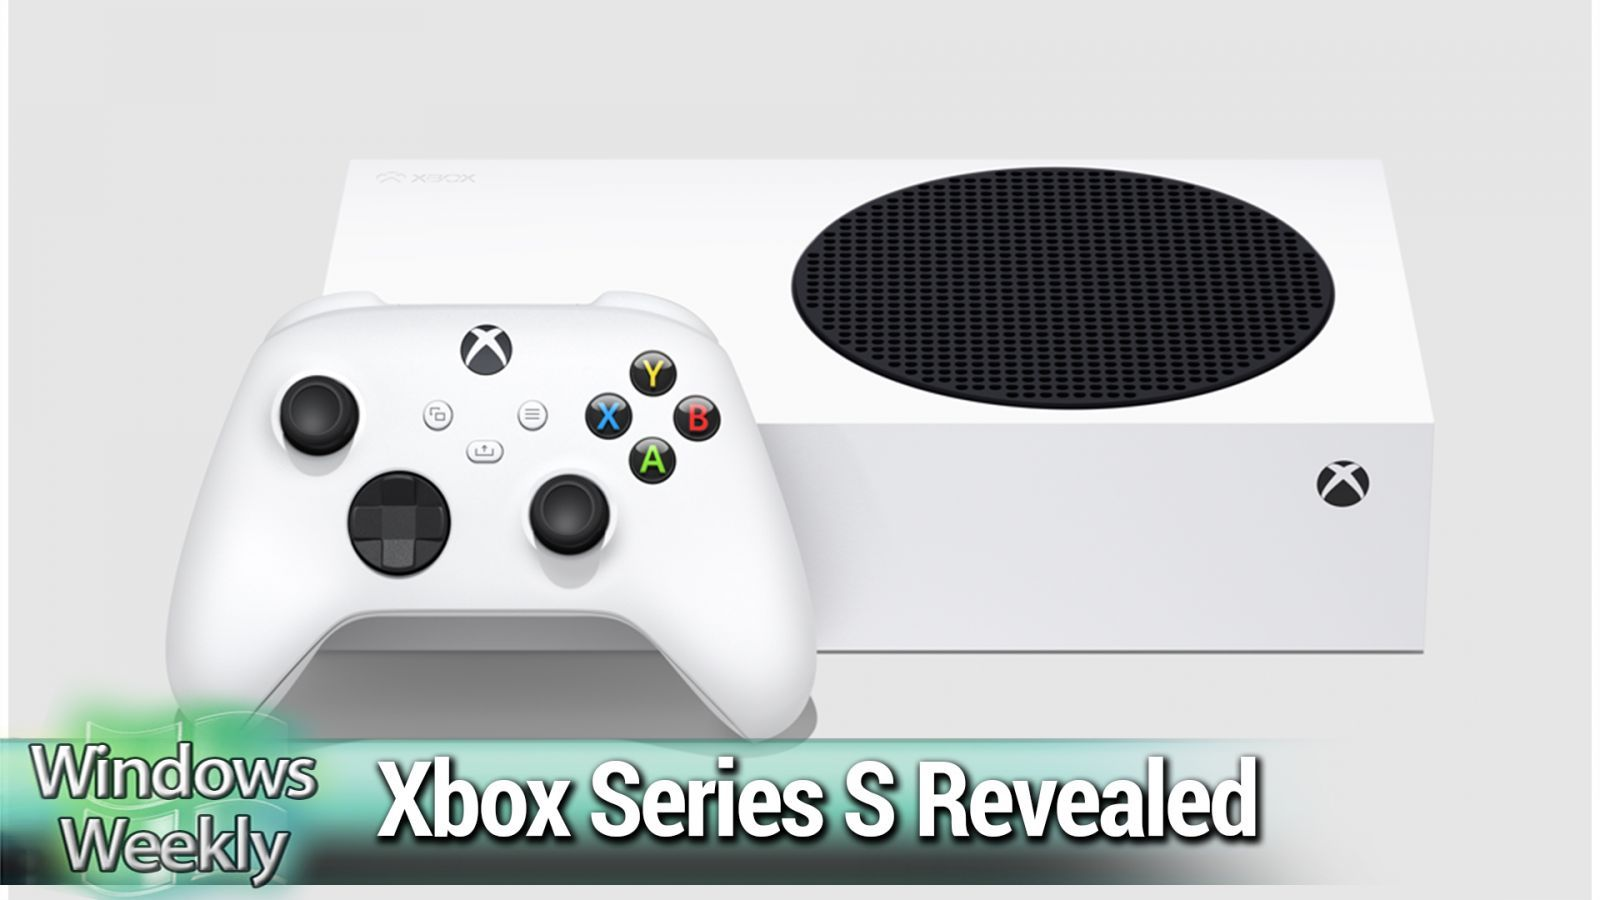 WW 689: Two Trips to Dunkin' - Xbox Series S Price and Release Date